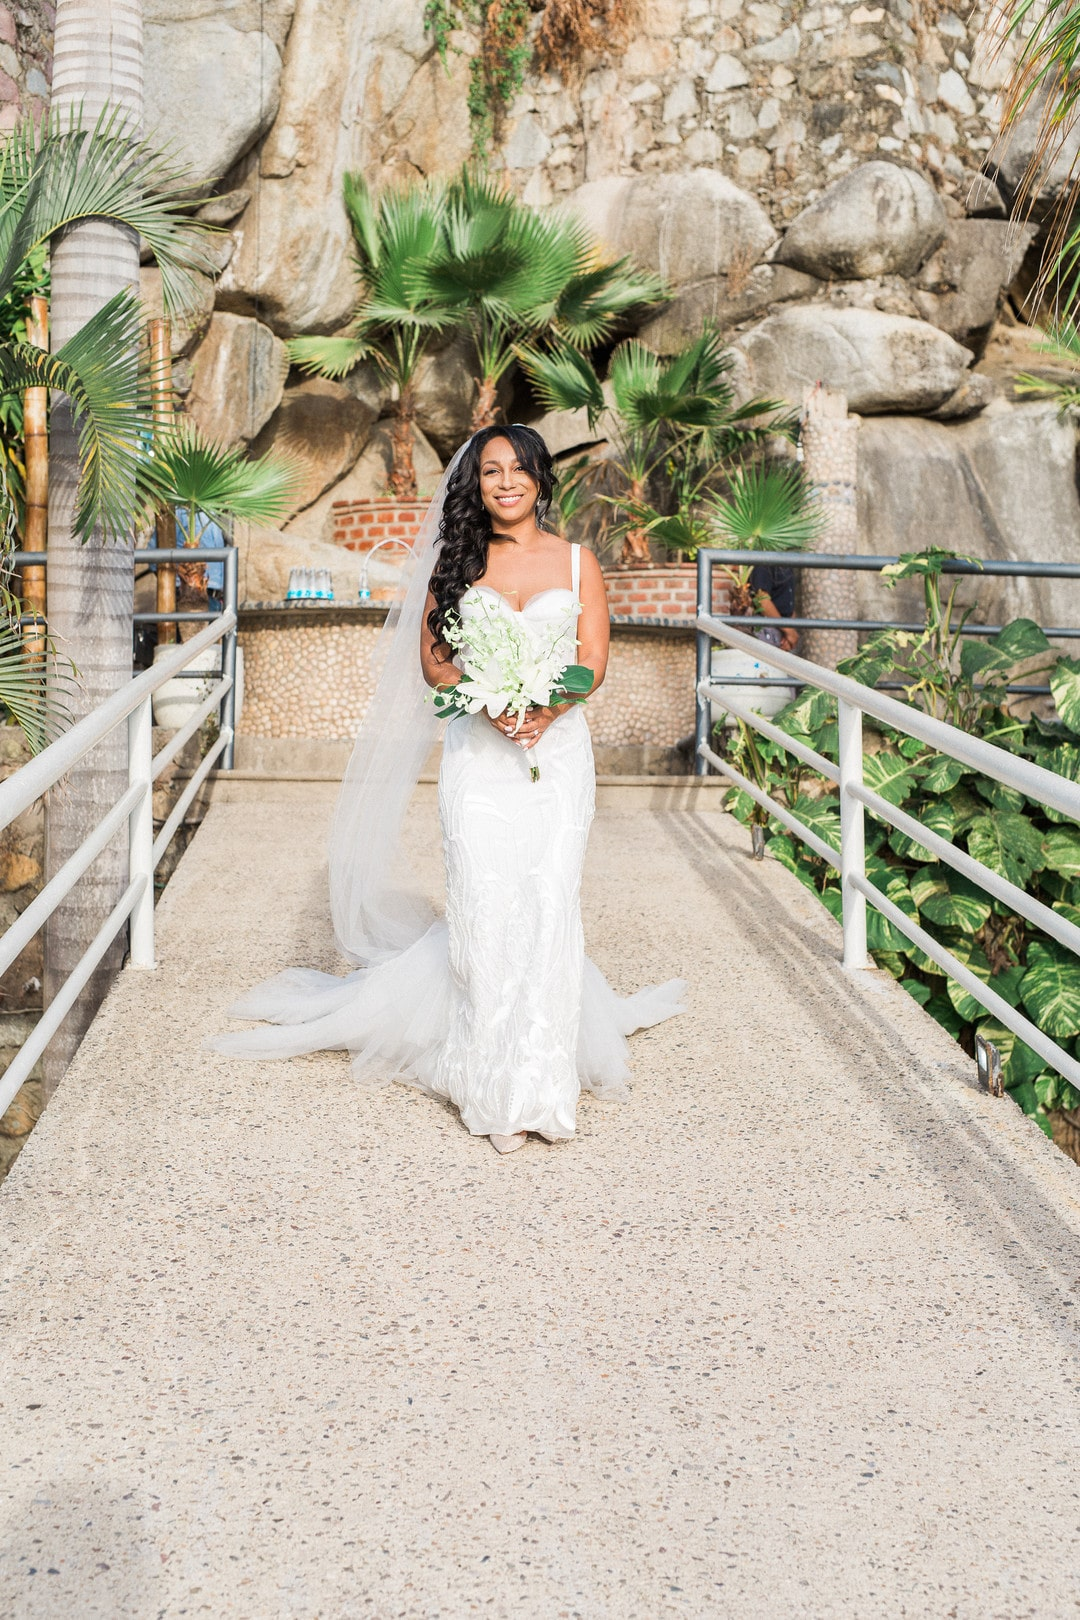 Kathryn and Josh's Cliff side Destination Wedding in Puerto Vallarta Mexico, Photography by Kristina Karina Photography for Destination Wedding network Adriana Weddings